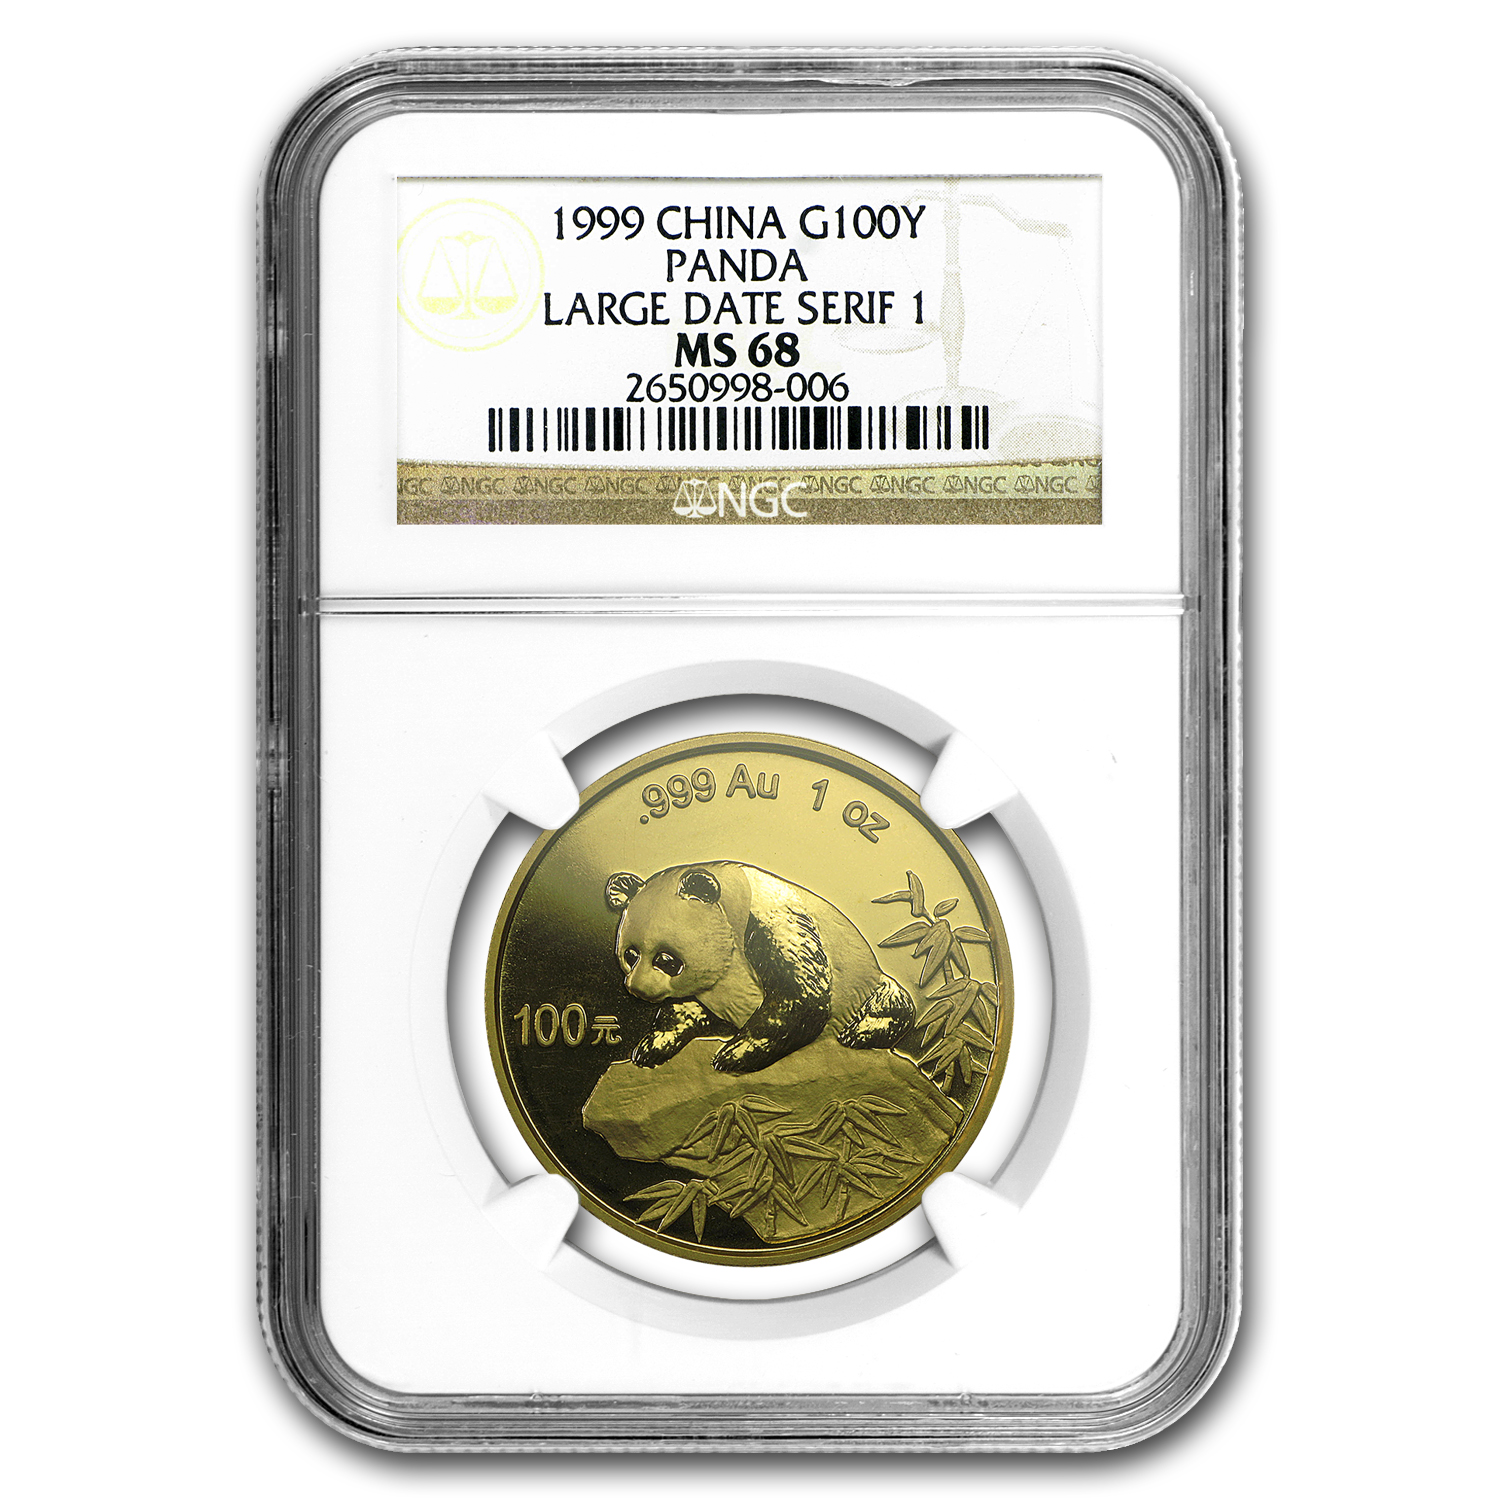 1999 1 oz Gold Chinese Panda Large Date/Serif 1 MS-68 NGC